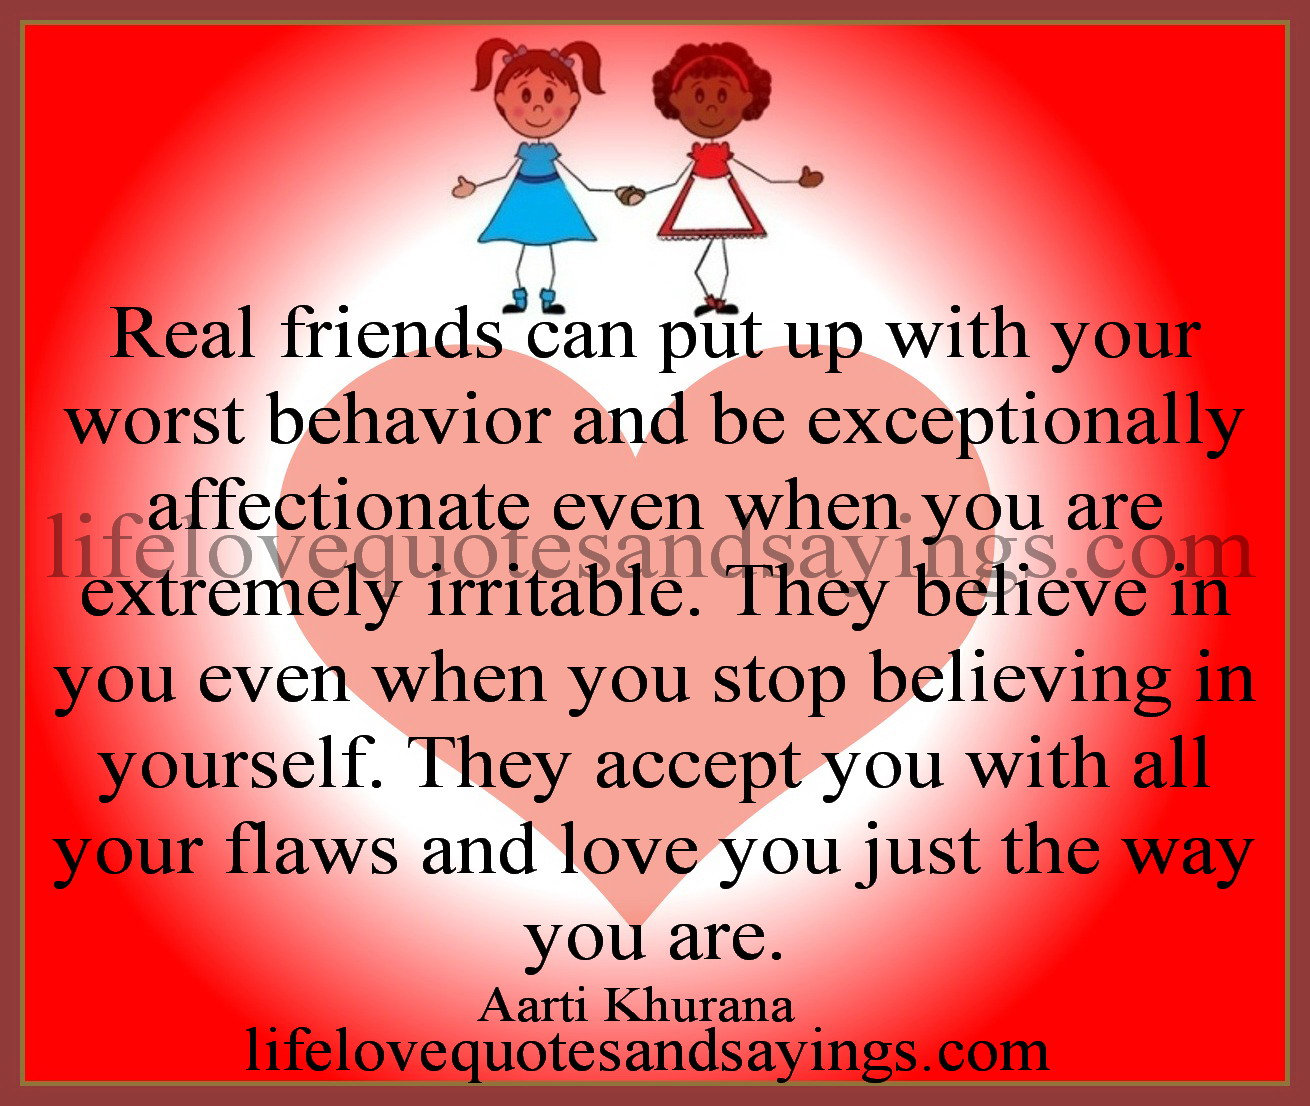 Funny Quotes About Friendship And Love: Funny-love-sad-birthday Sms: Love Quotes